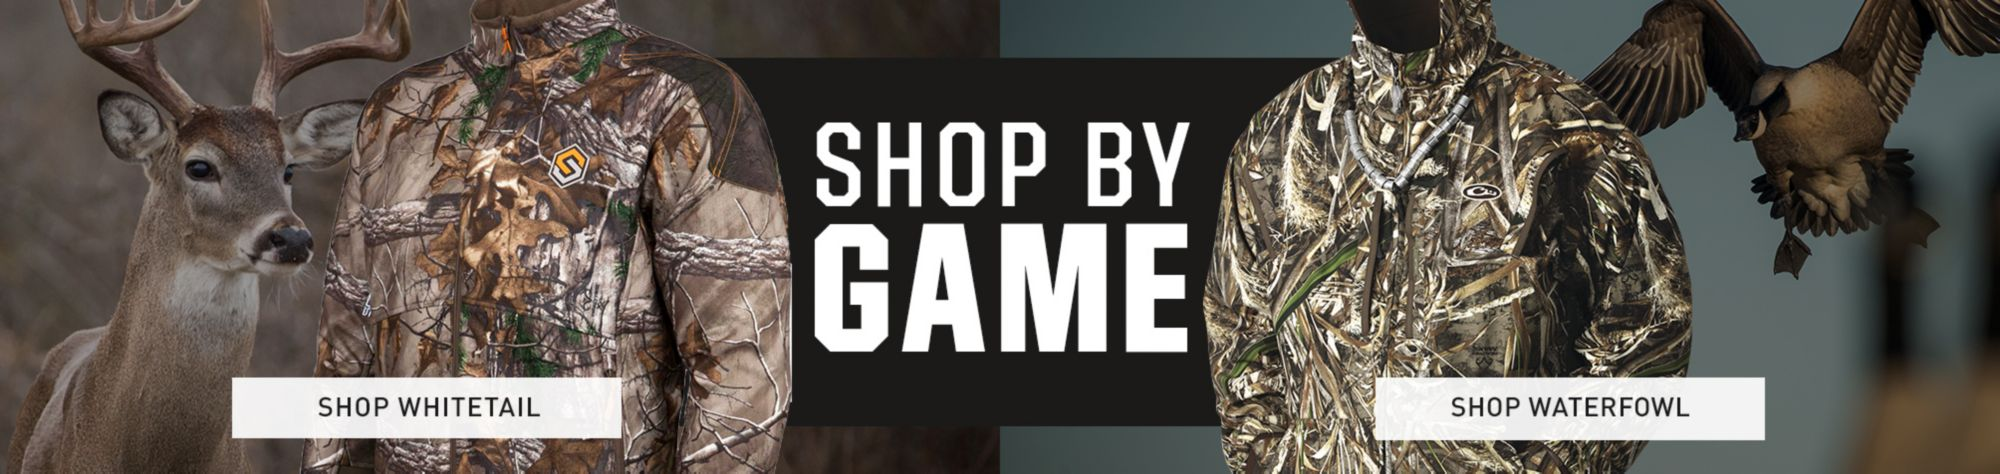 Shop By Game - Whitetail & Waterfowl Apparel